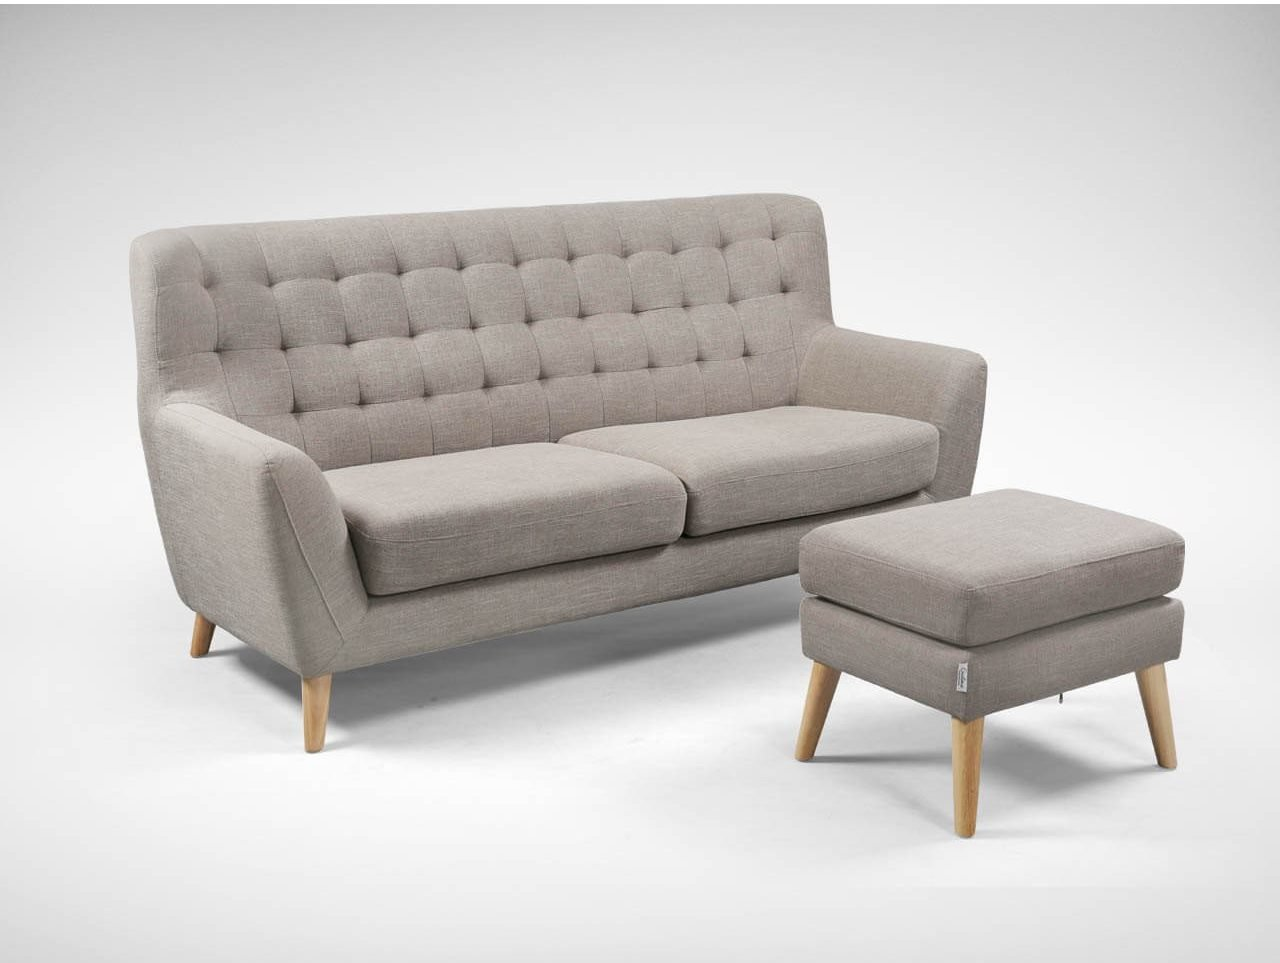 Ottoman with Sofa For Extra Seating in The Living Room - Comfort Furniture